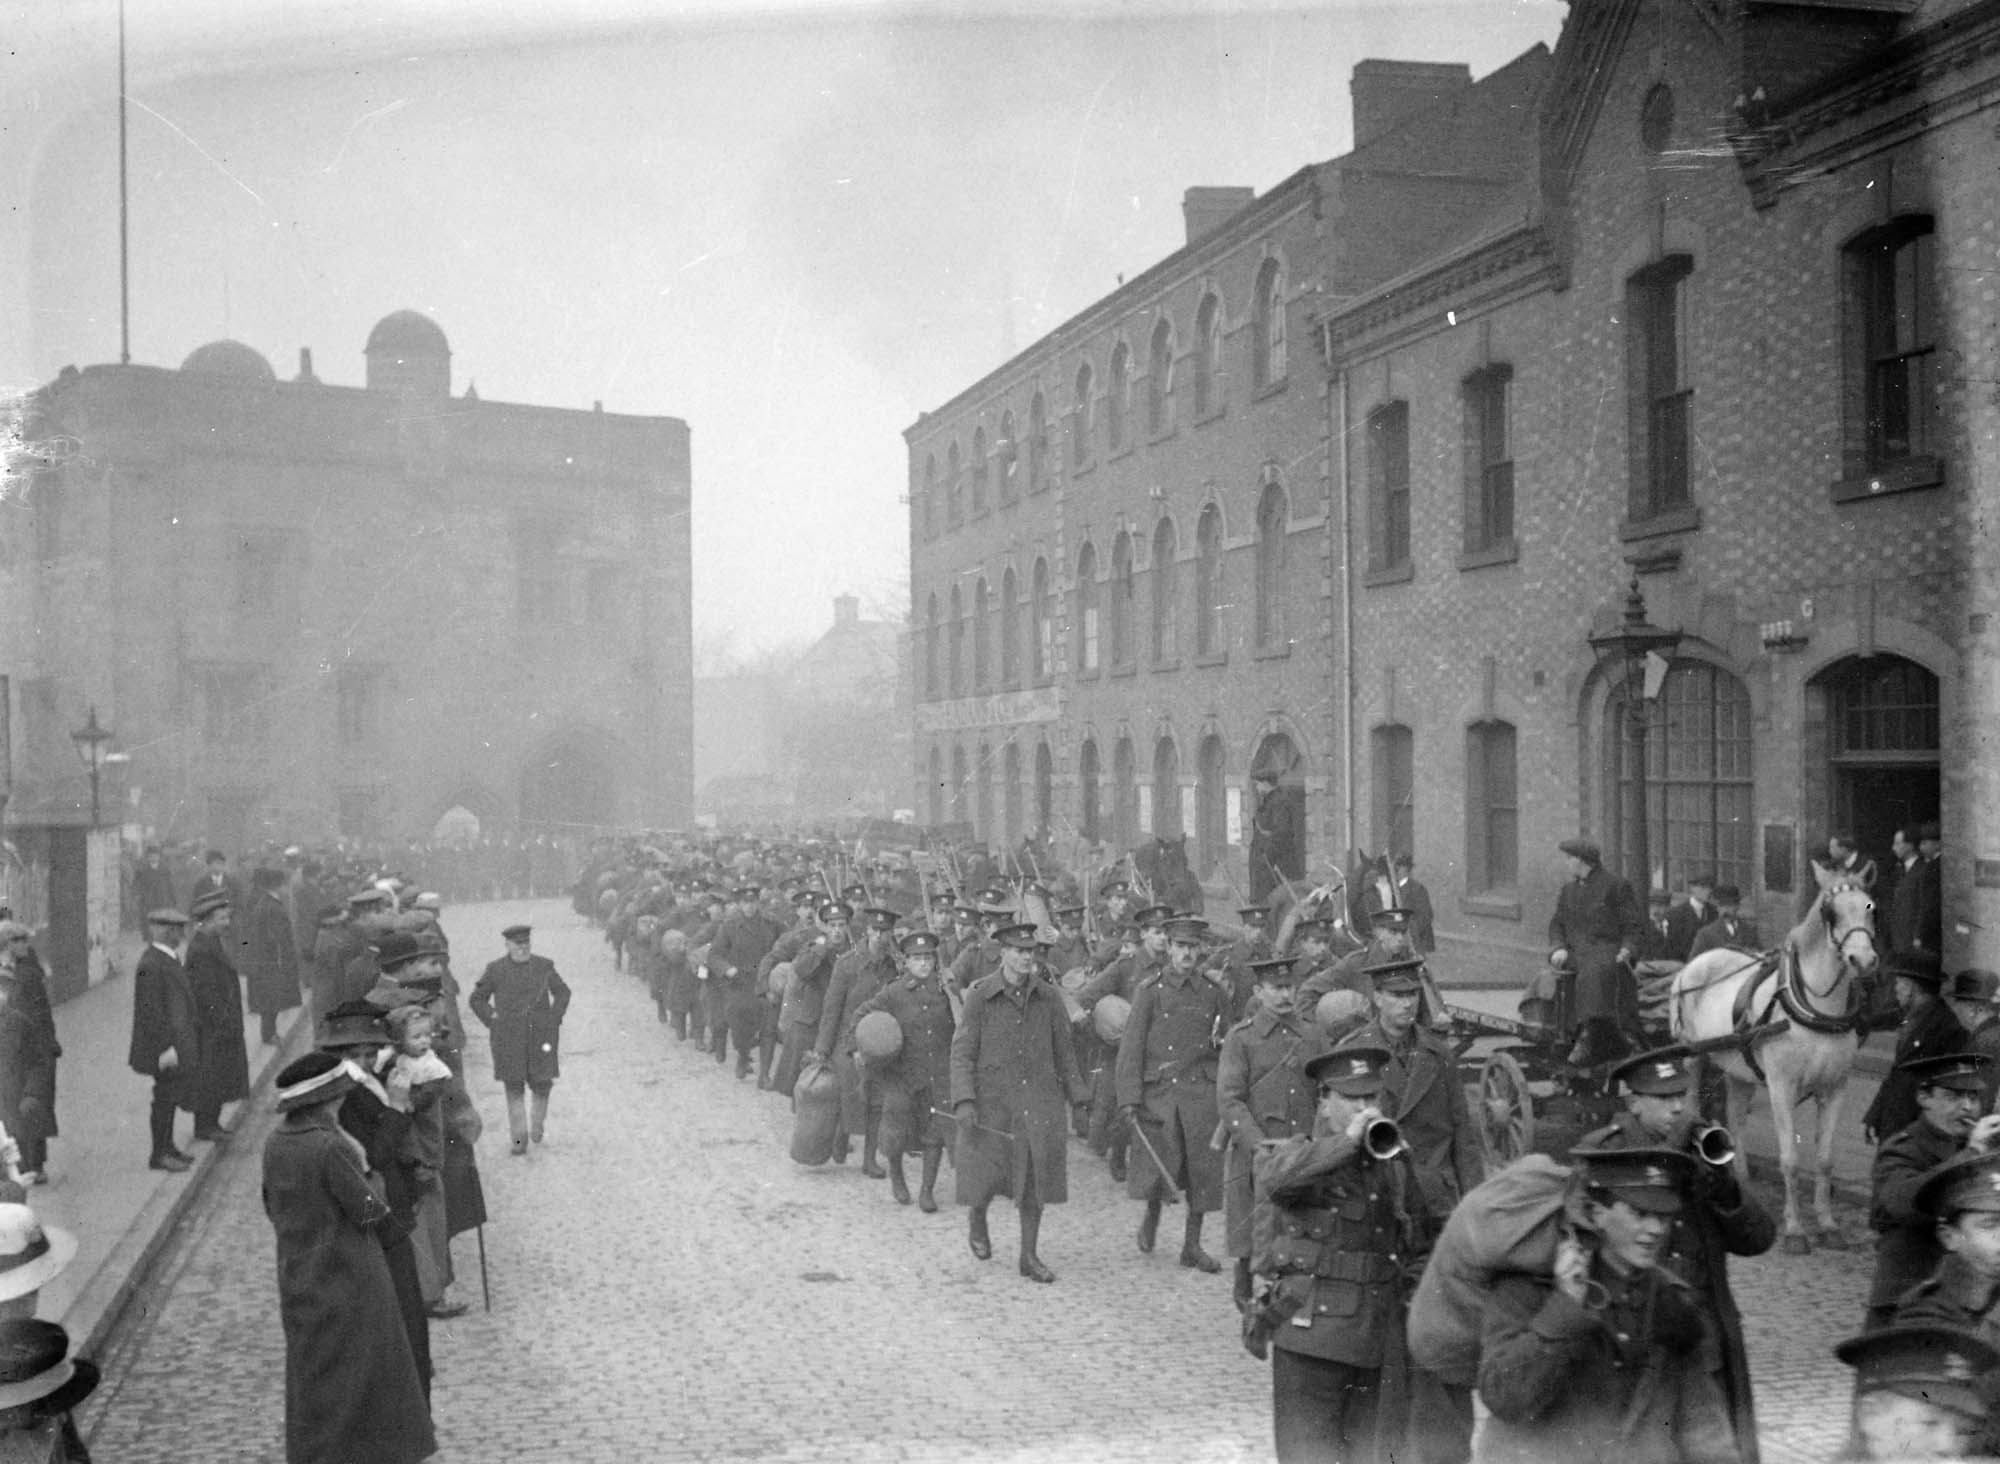 Fully accoutred troops of Leicestershire Regiment marching down Newarke Street, 1914 -